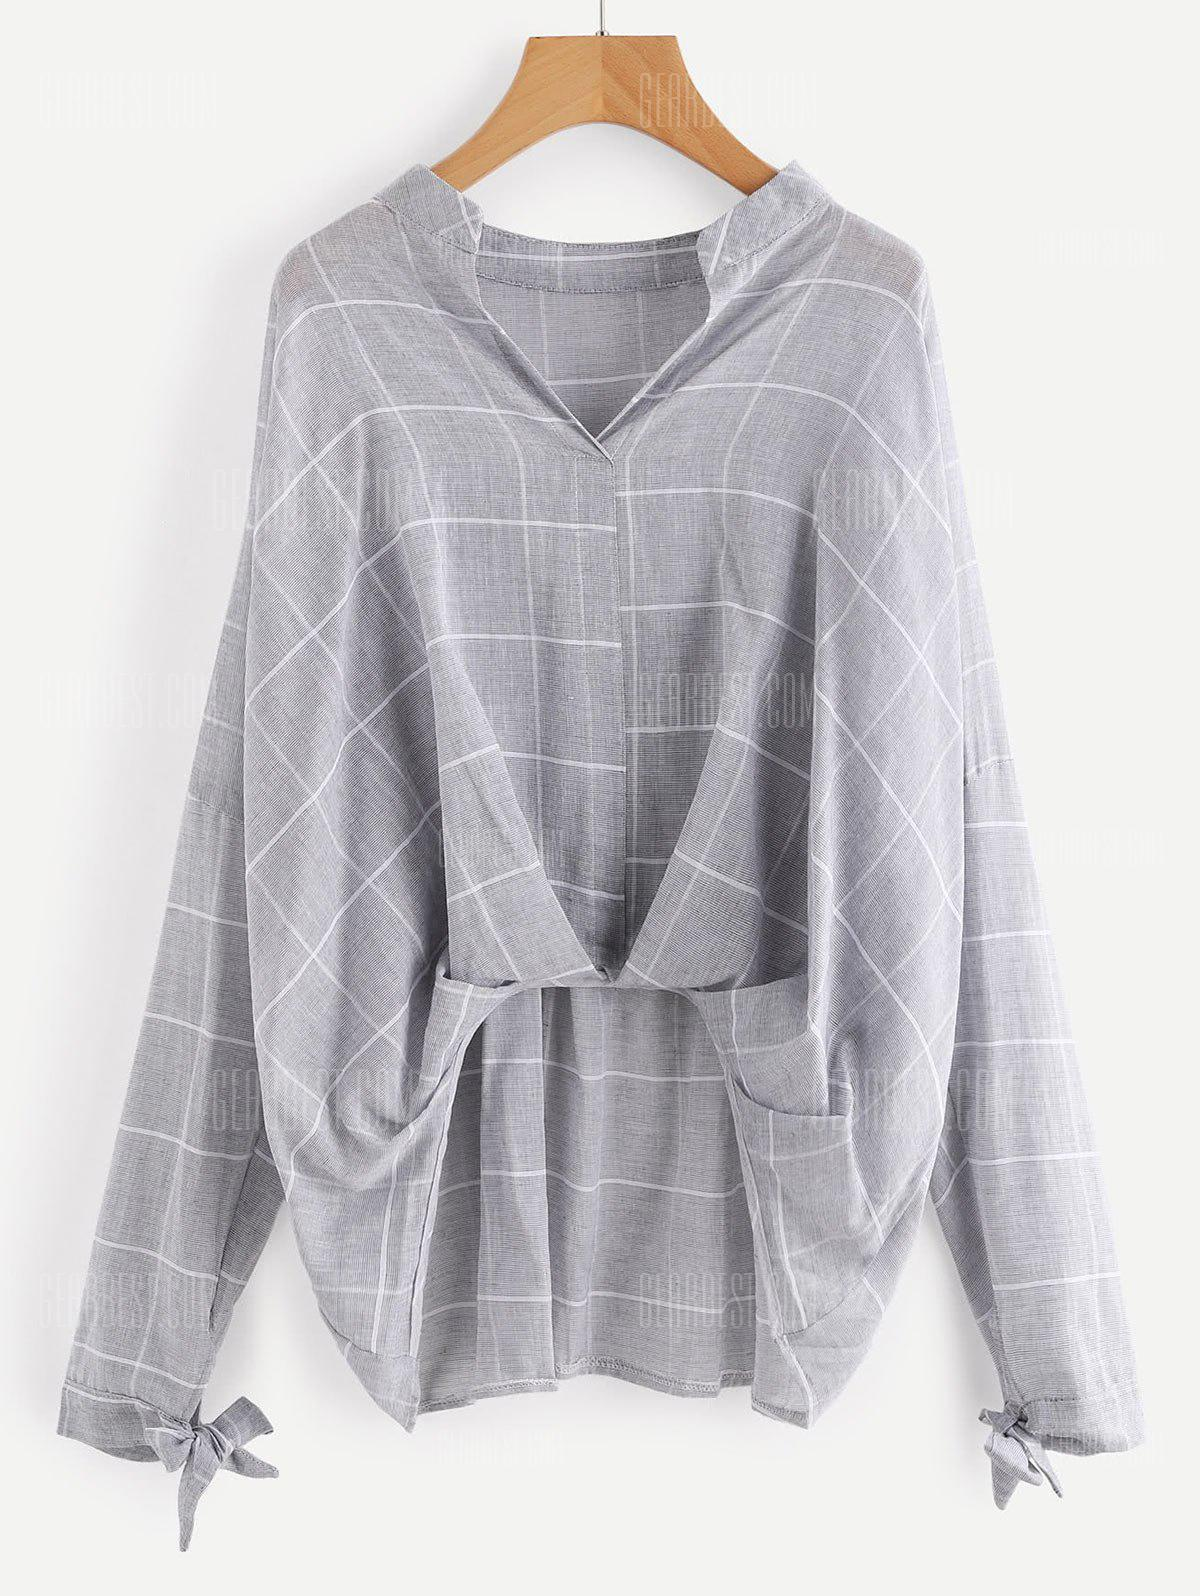 GRAY L Gathered Checked High Low Blouse